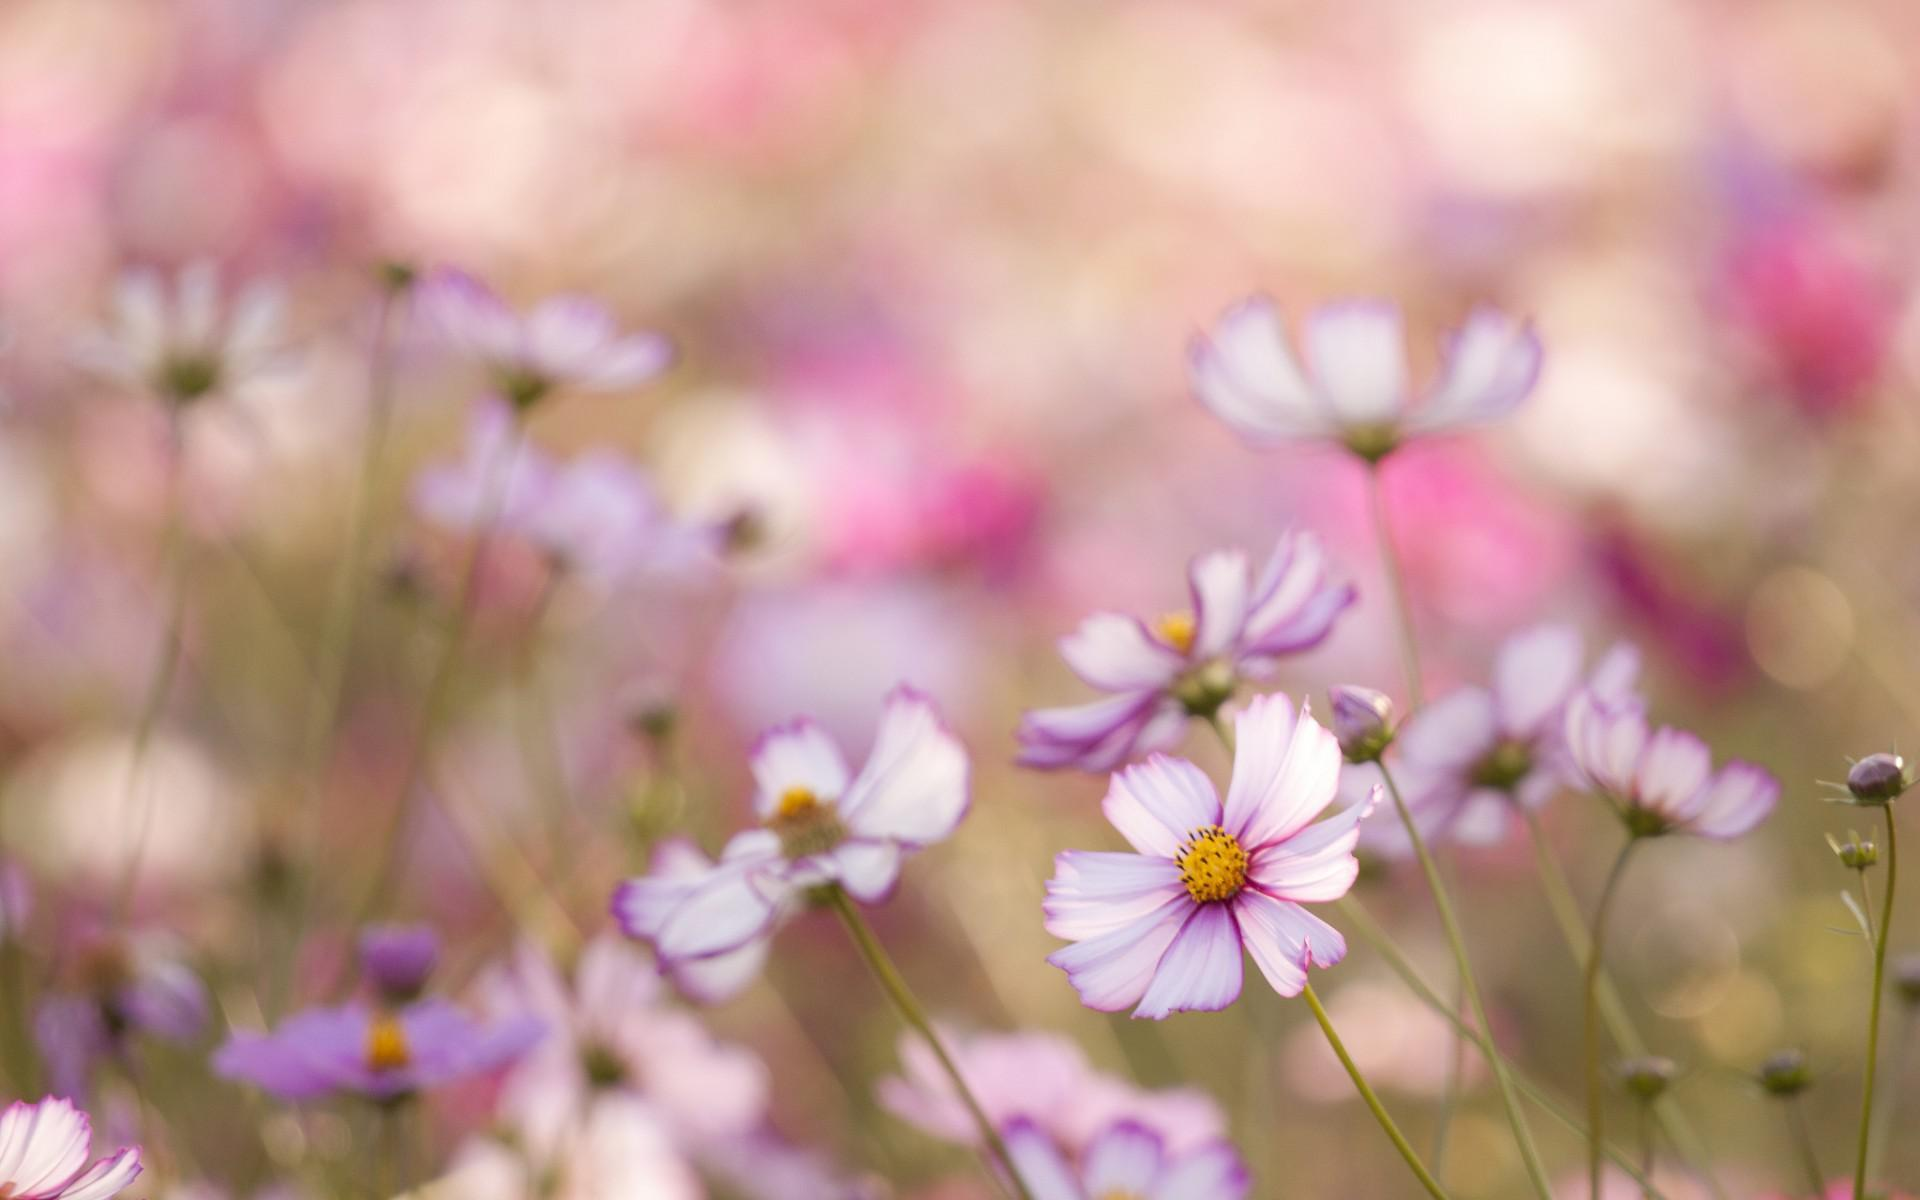 Blurred Flower Garden Background